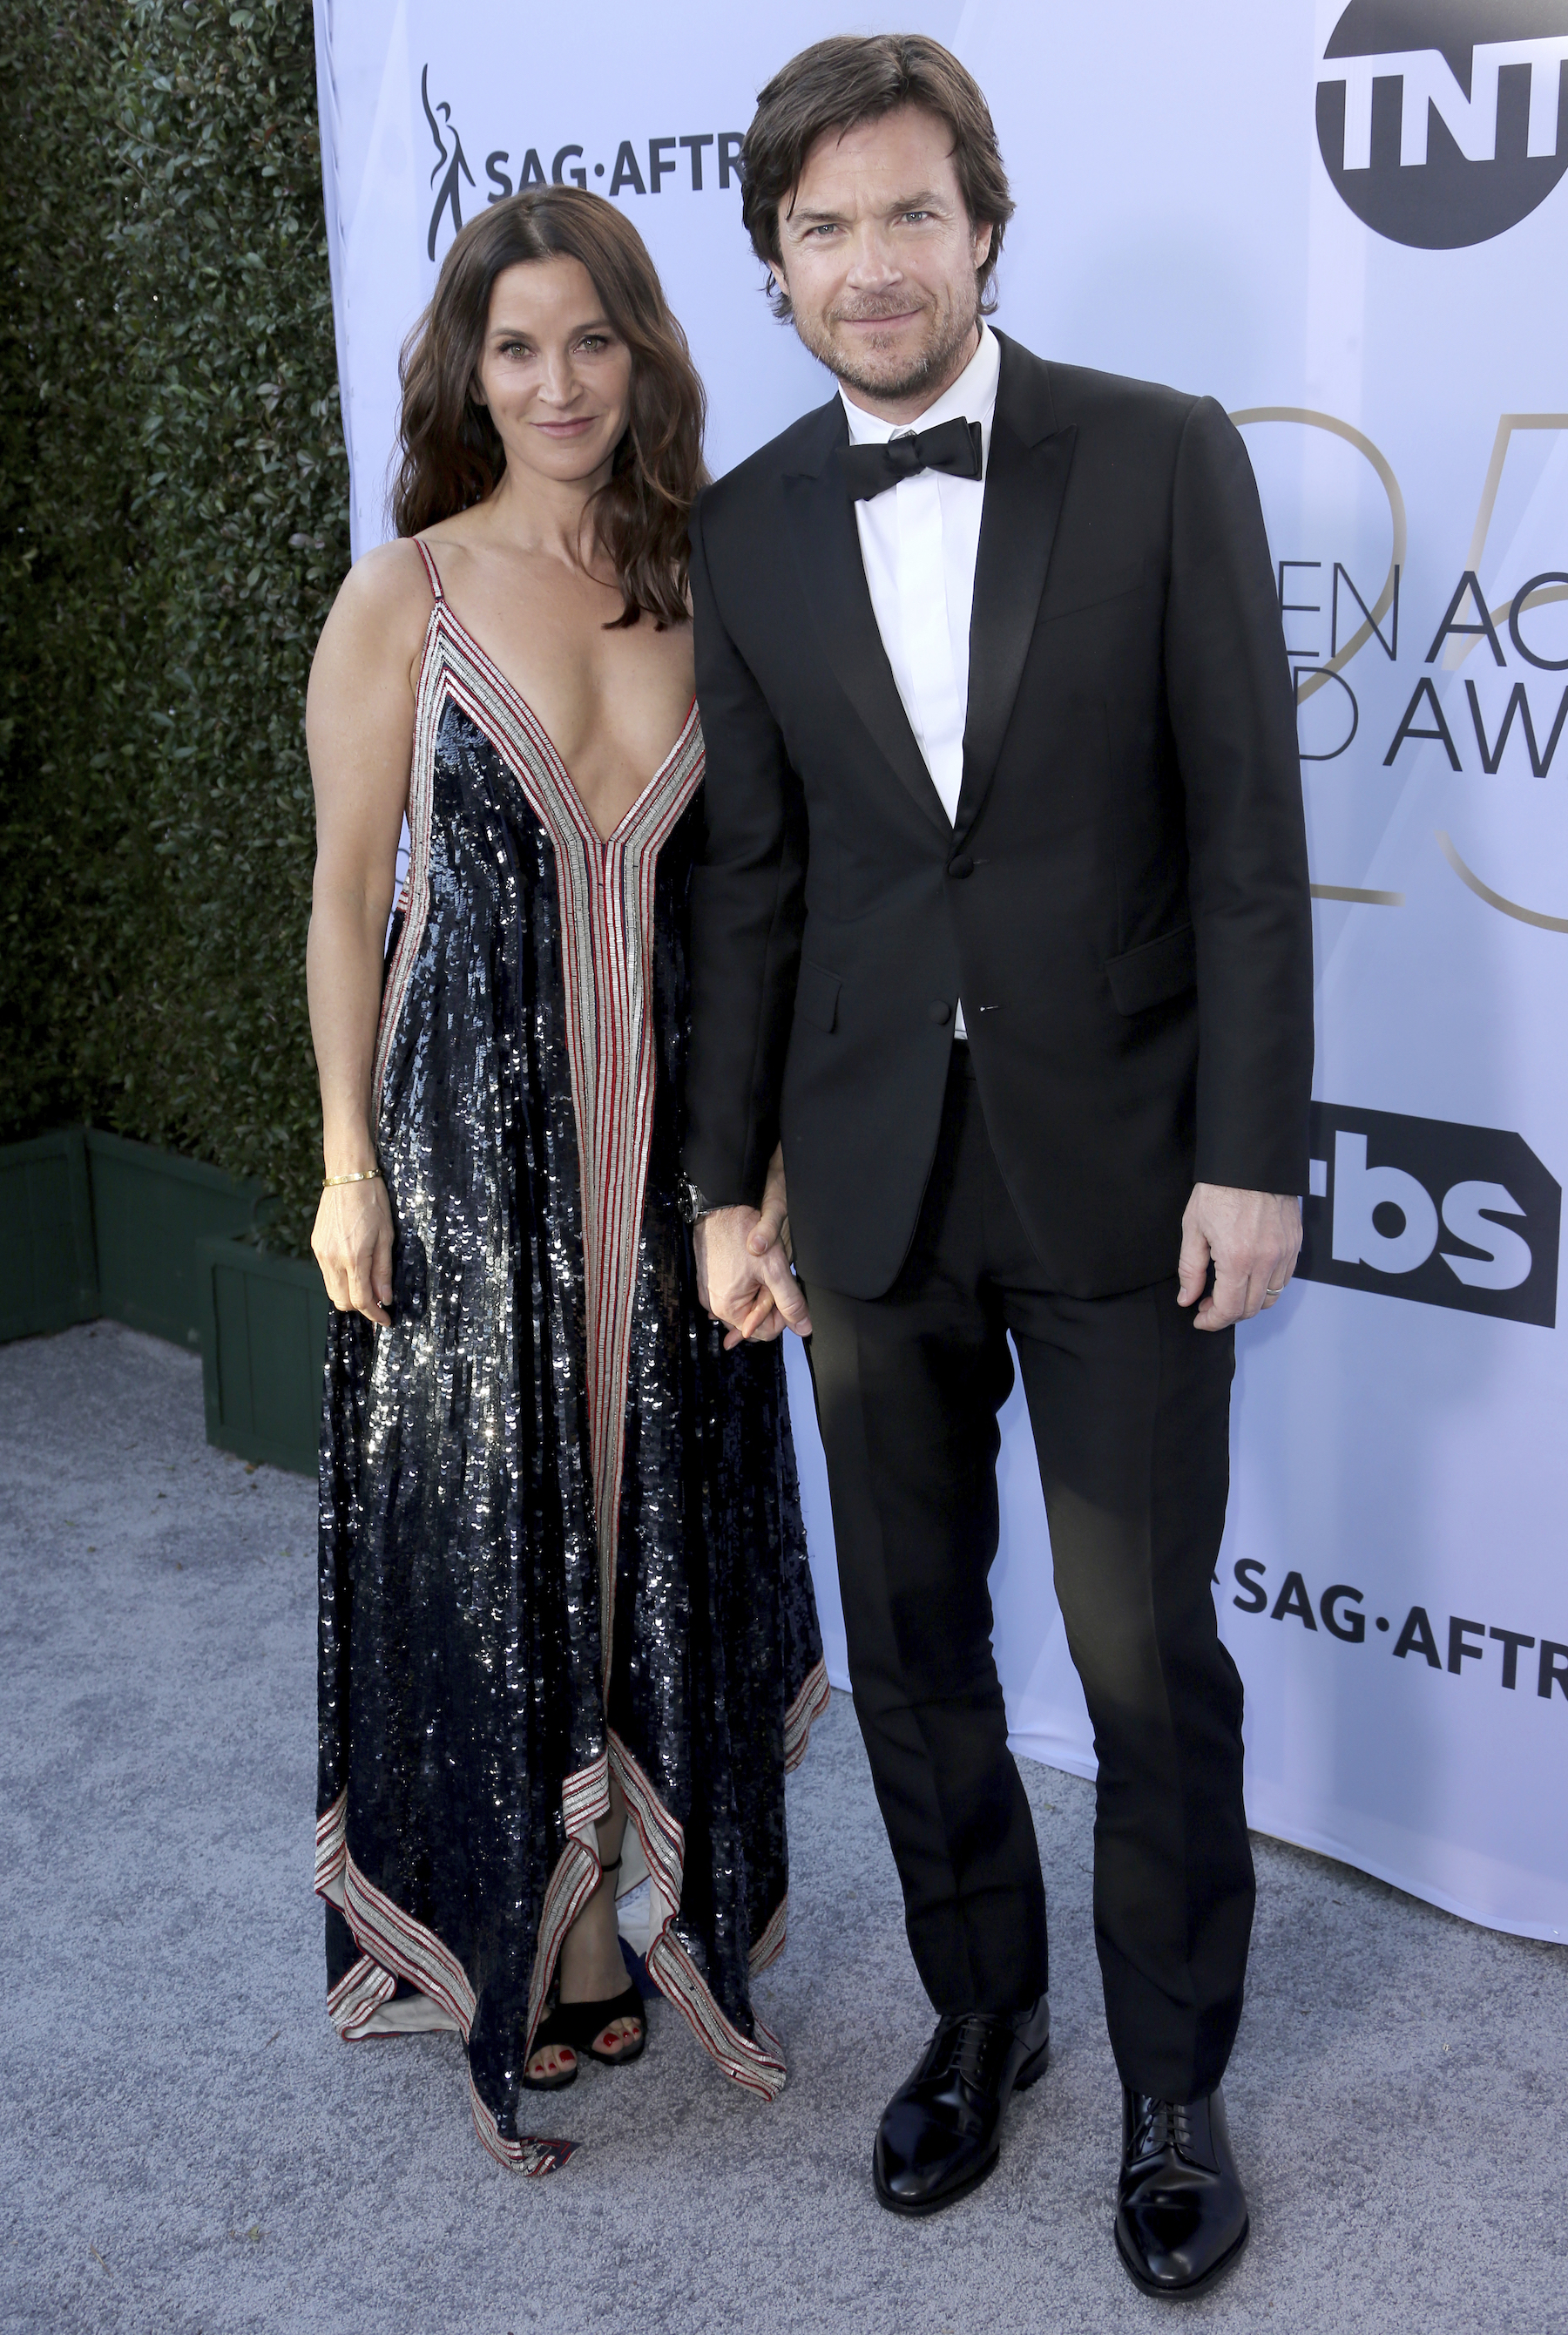 "<div class=""meta image-caption""><div class=""origin-logo origin-image ap""><span>AP</span></div><span class=""caption-text"">Jason Bateman, right, and Amanda Anka arrive at the 25th annual Screen Actors Guild Awards at the Shrine Auditorium & Expo Hall on Sunday, Jan. 27, 2019, in Los Angeles. (Willy Sanjuan/Invision/AP)</span></div>"